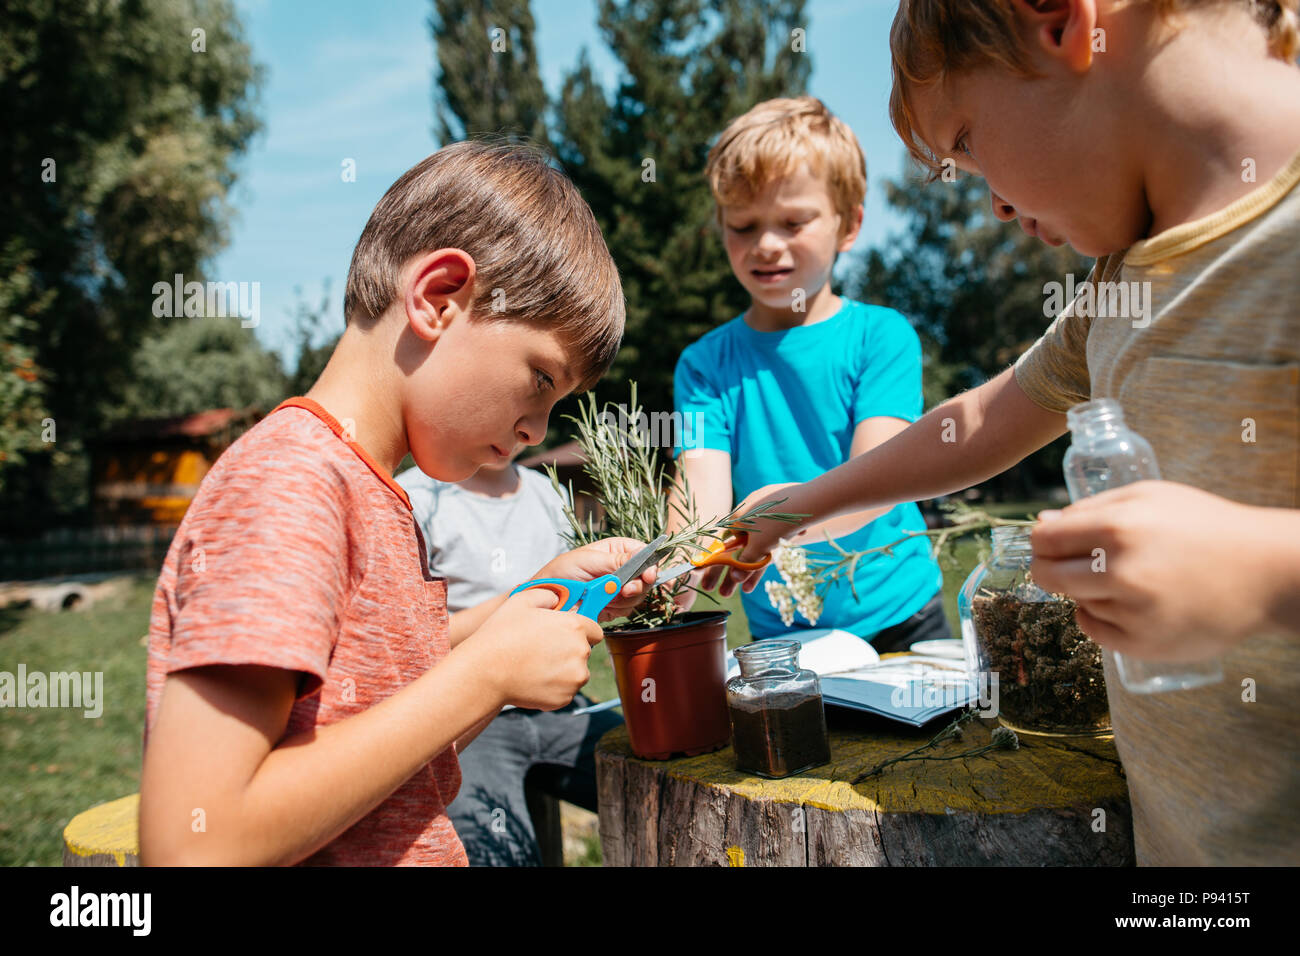 Primary students exploring herbs and plants in a school garden. Children learning together at a natural science class. - Stock Image